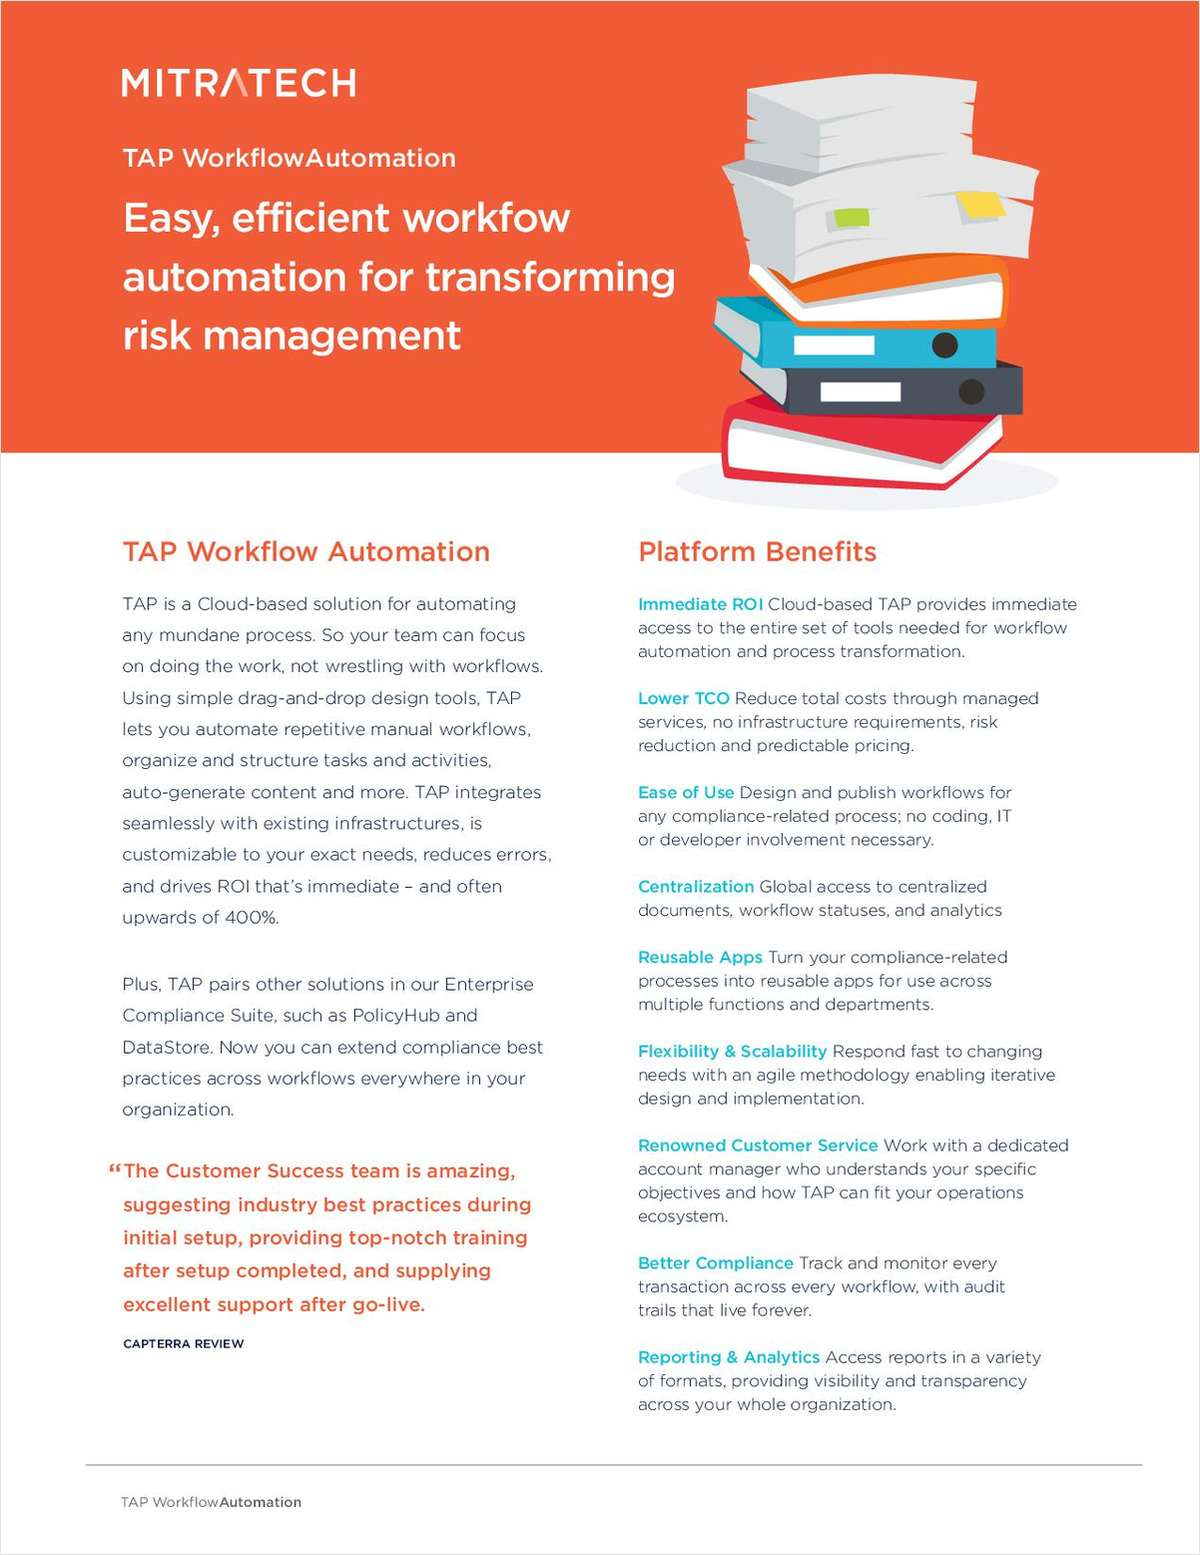 TAP Workflow Automation for Transforming Risk Management